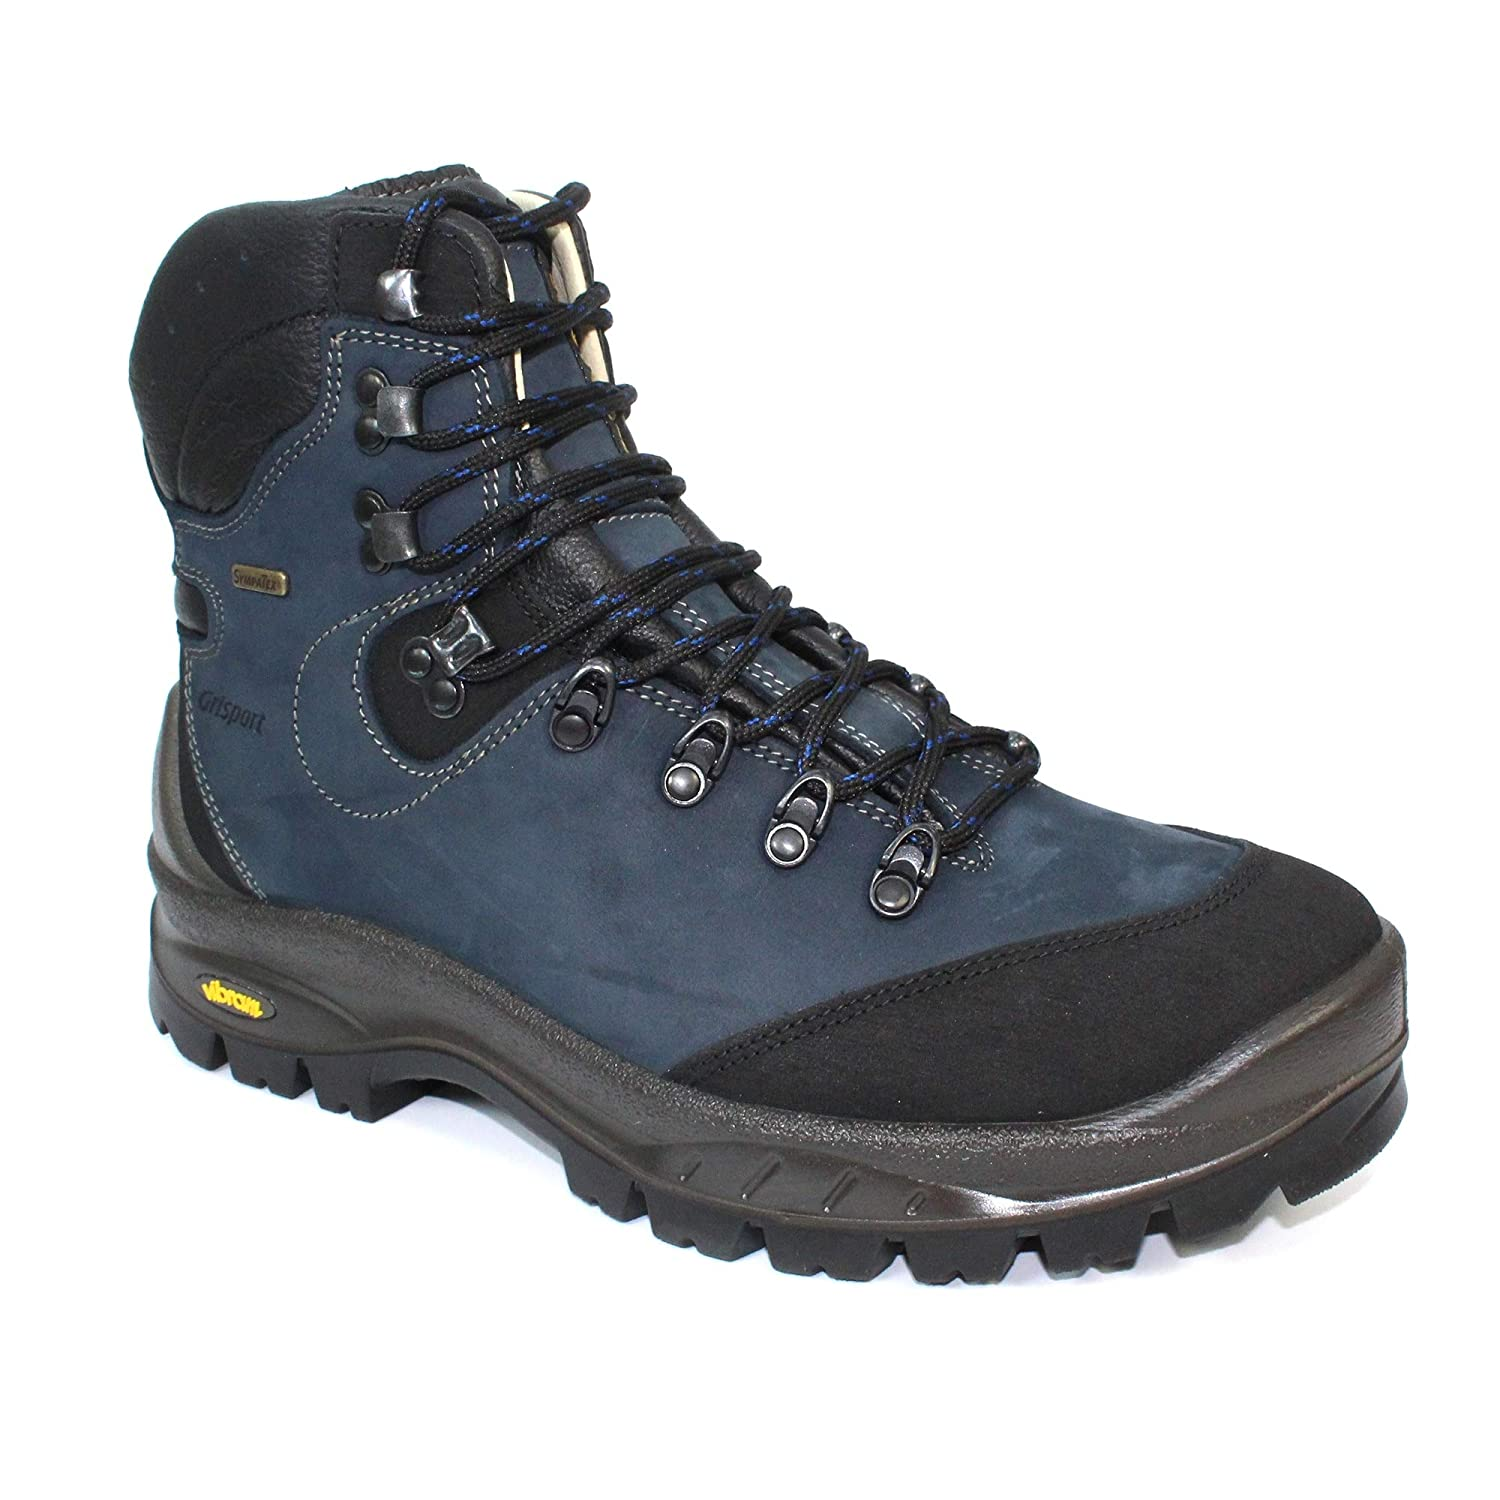 e42d6ef6016 Grisport Unisex Navigator Walking Boot: Amazon.co.uk: Shoes & Bags